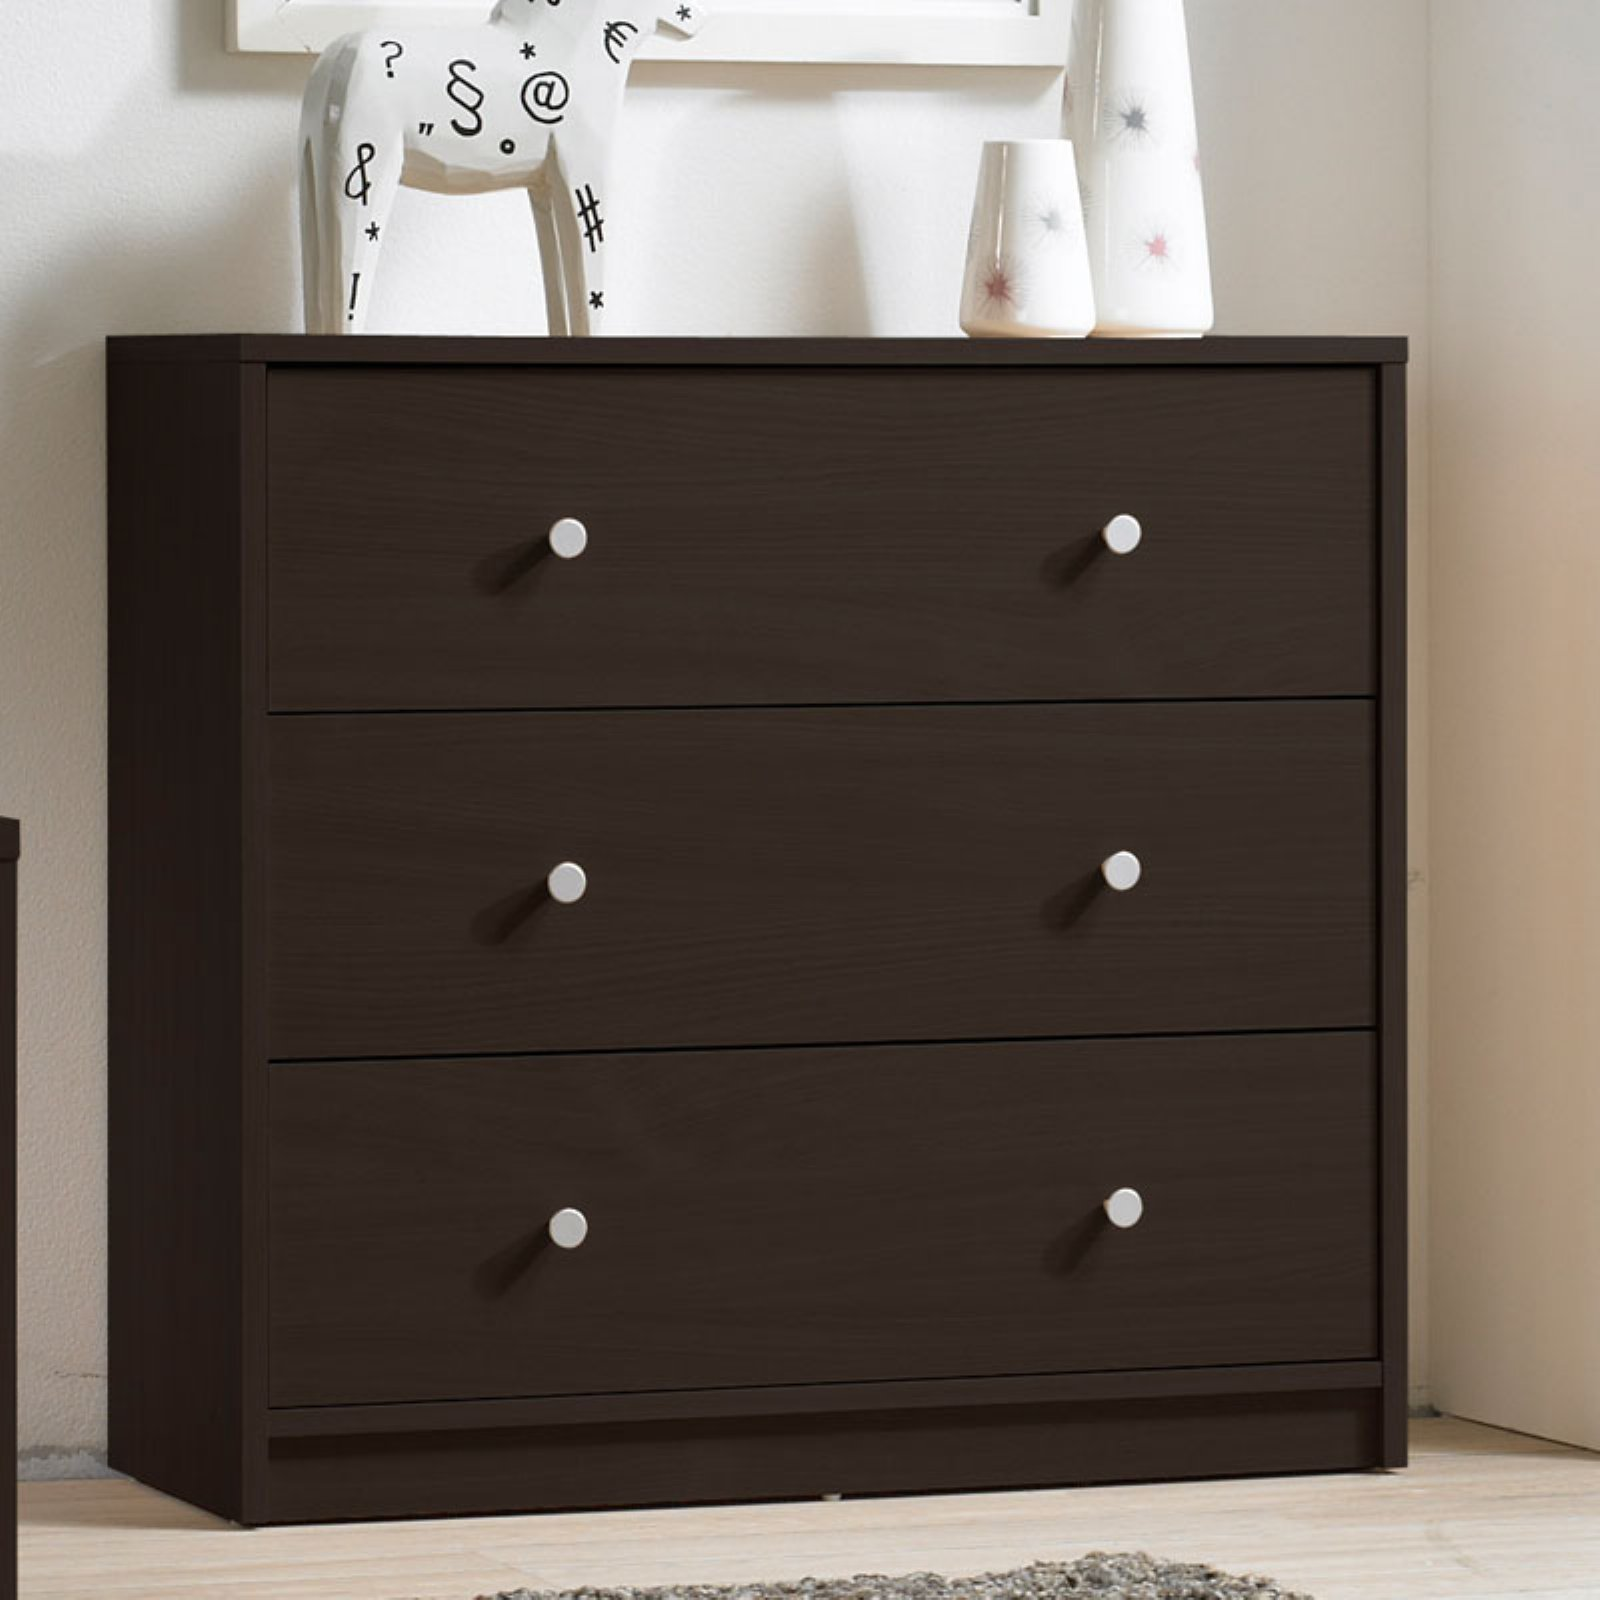 furniture dresser kane grey bedrooms s estero chests products chest cheap